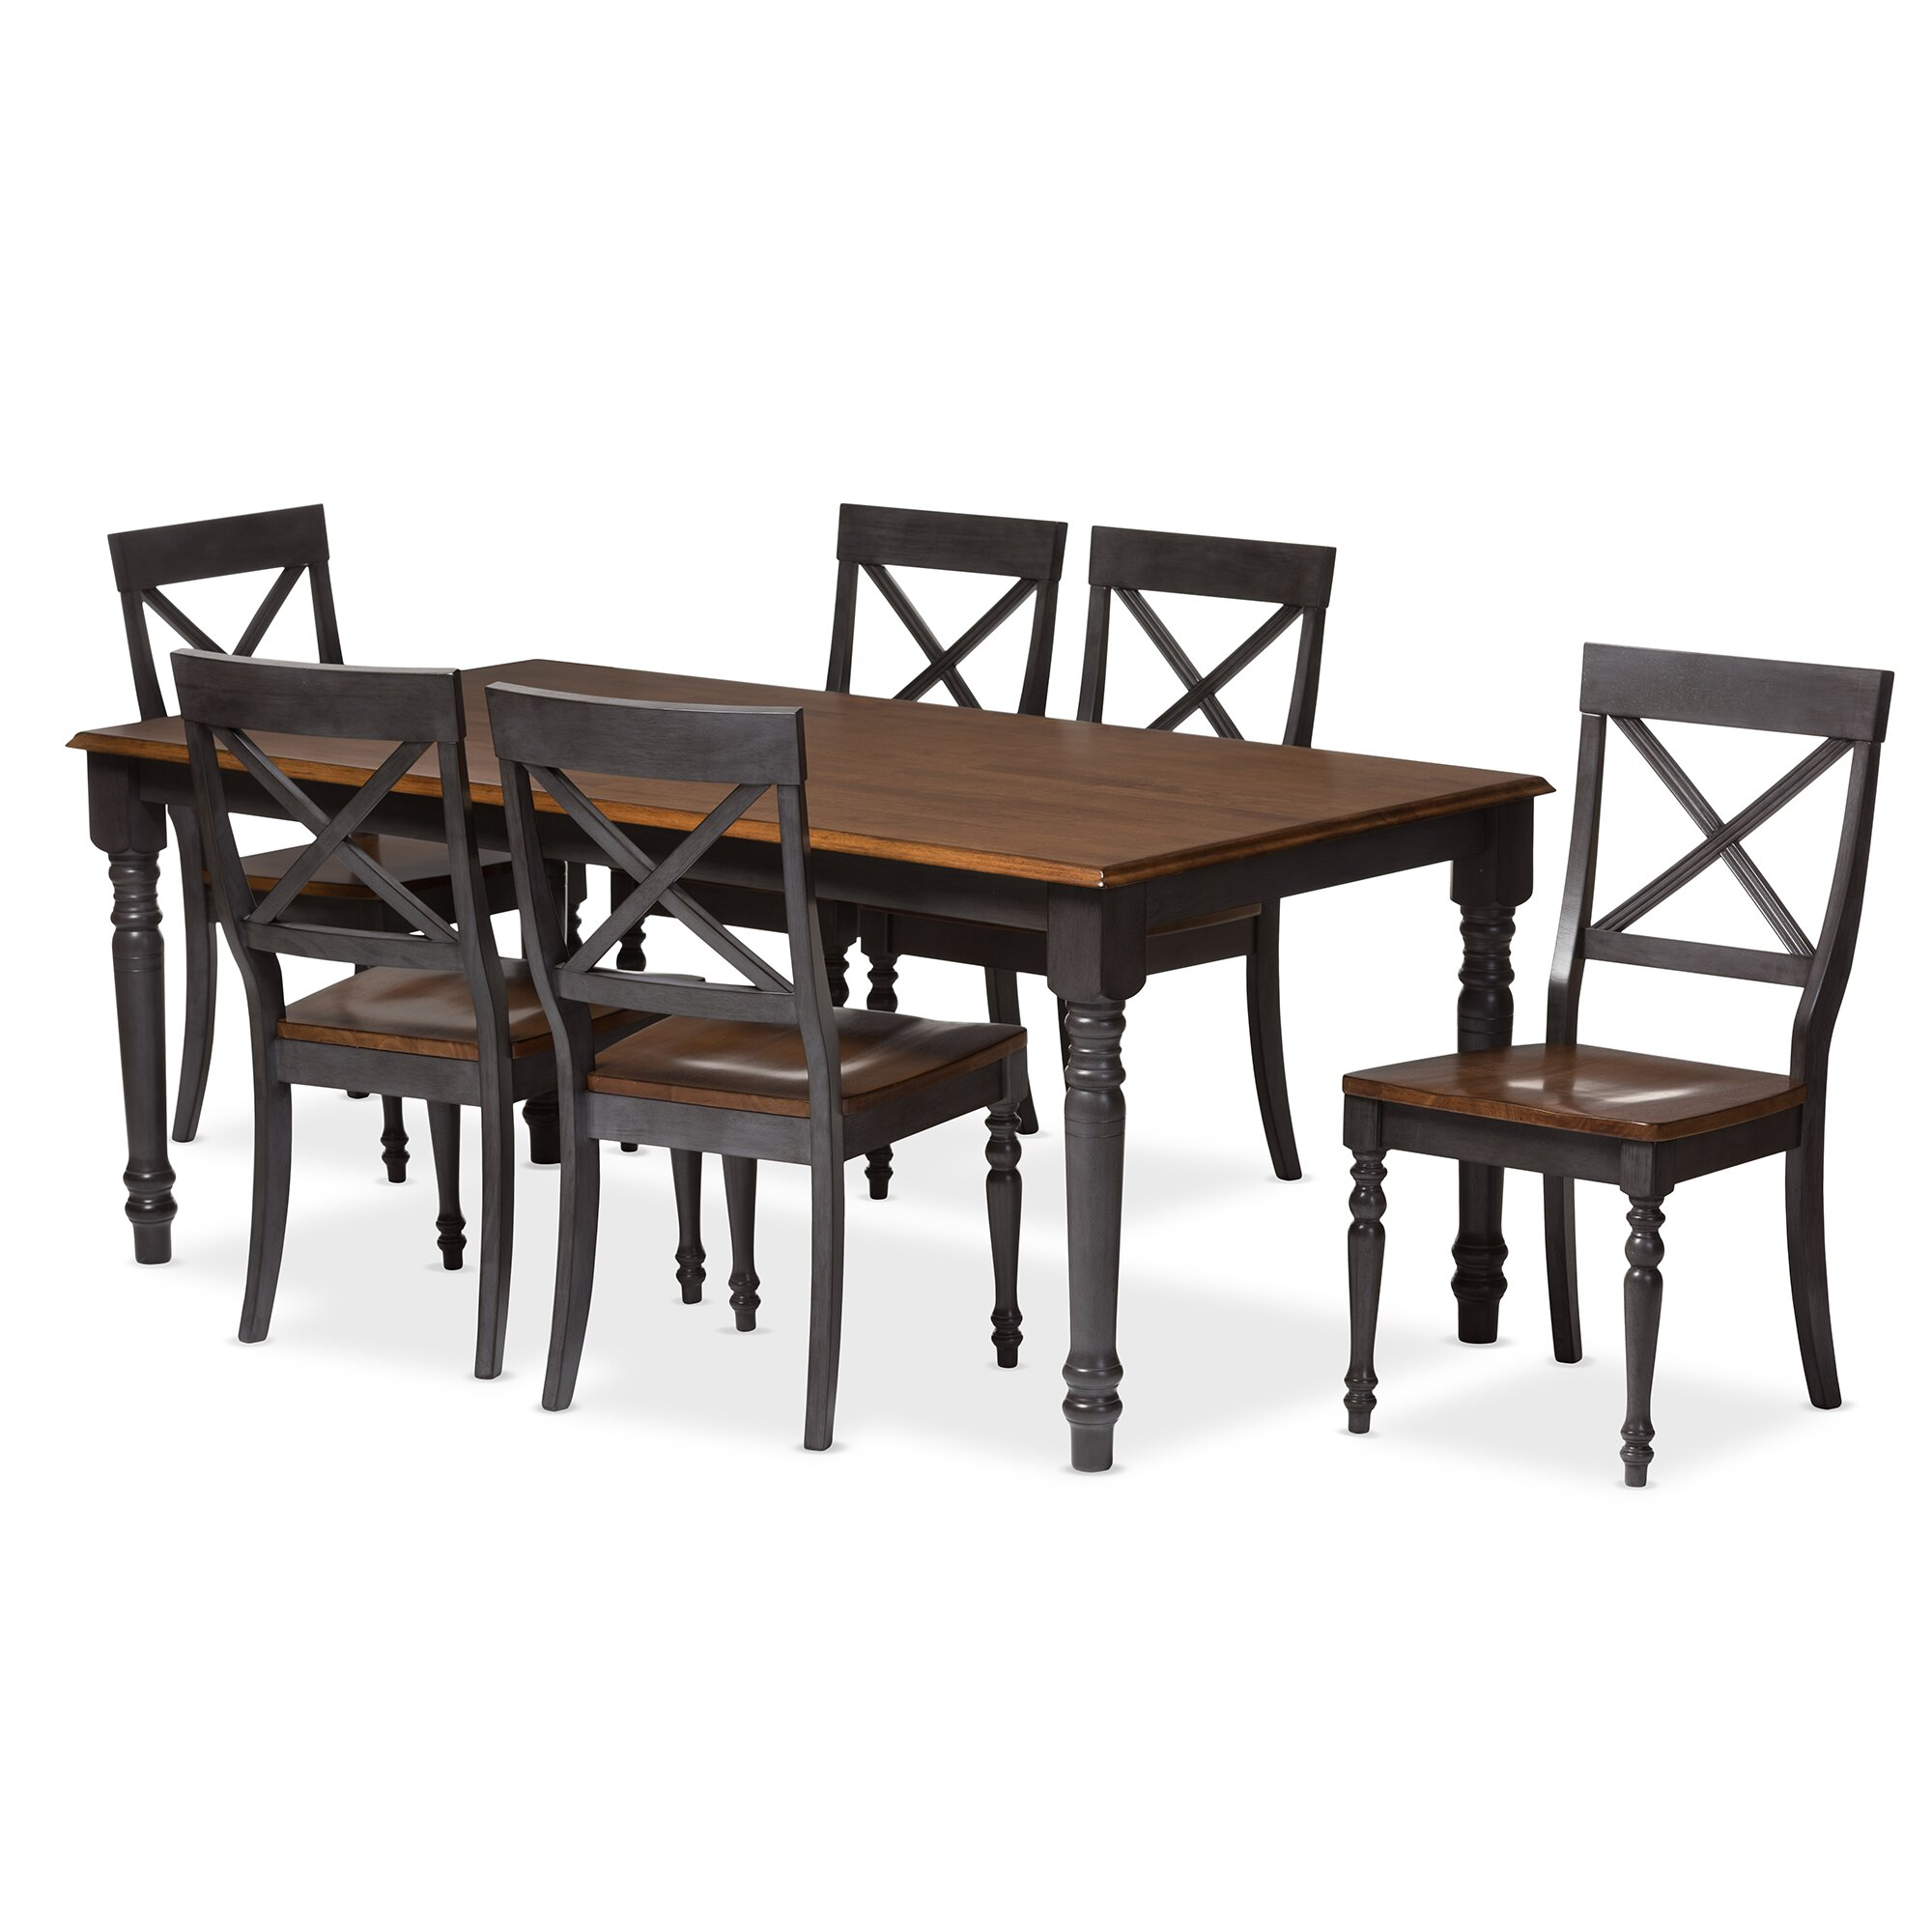 Wholesale interiors baxton studio pia 7 piece dining set for 7 piece dining set